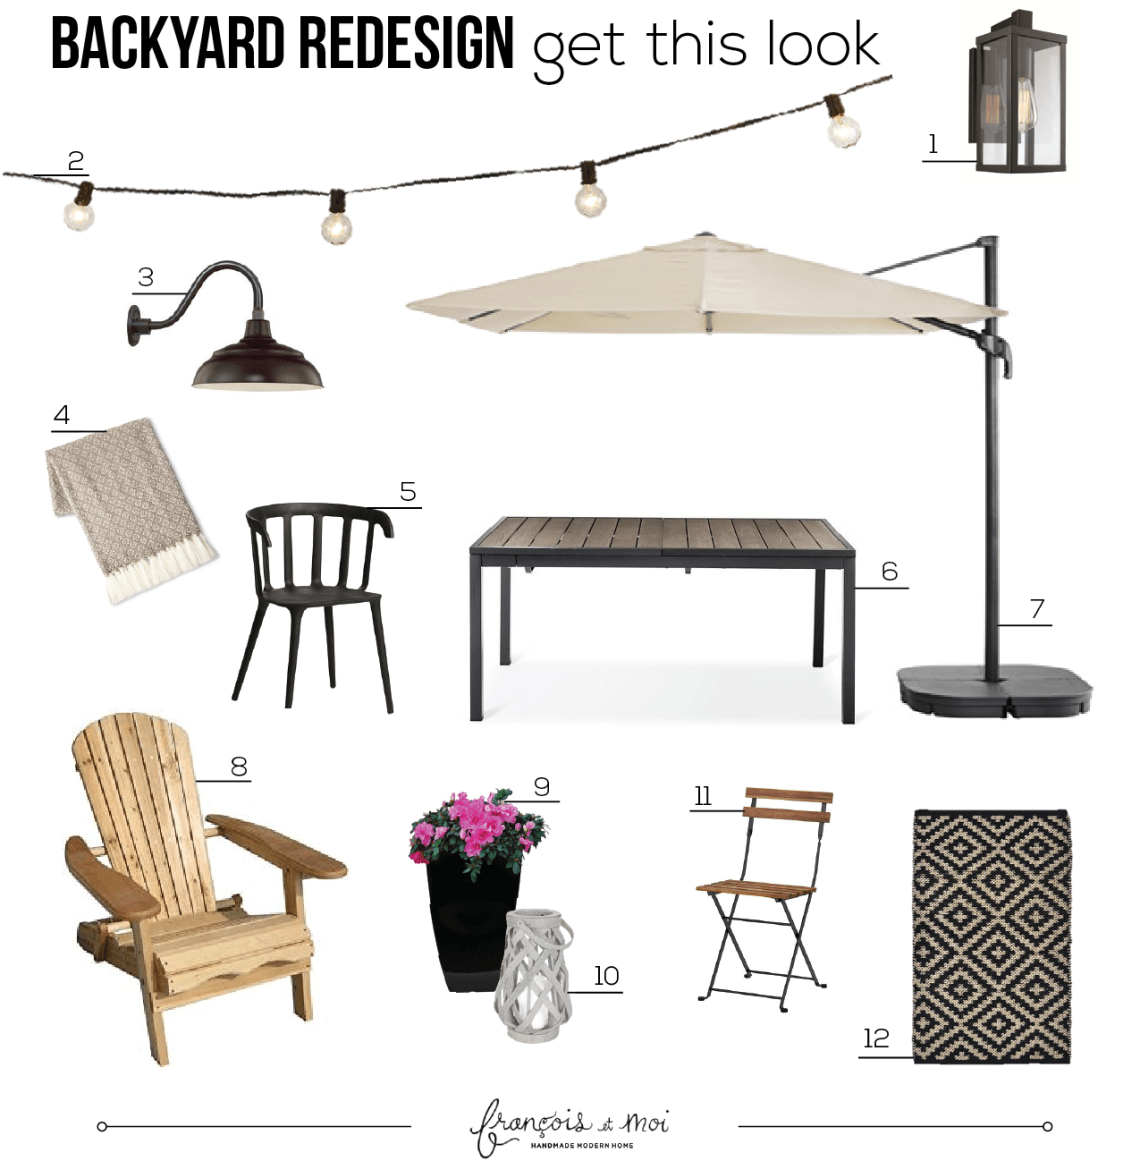 GET THIS LOOK! Peek into our backyard for full before and after details of our backyard redesign, including where to source everything for your own outdoor space!